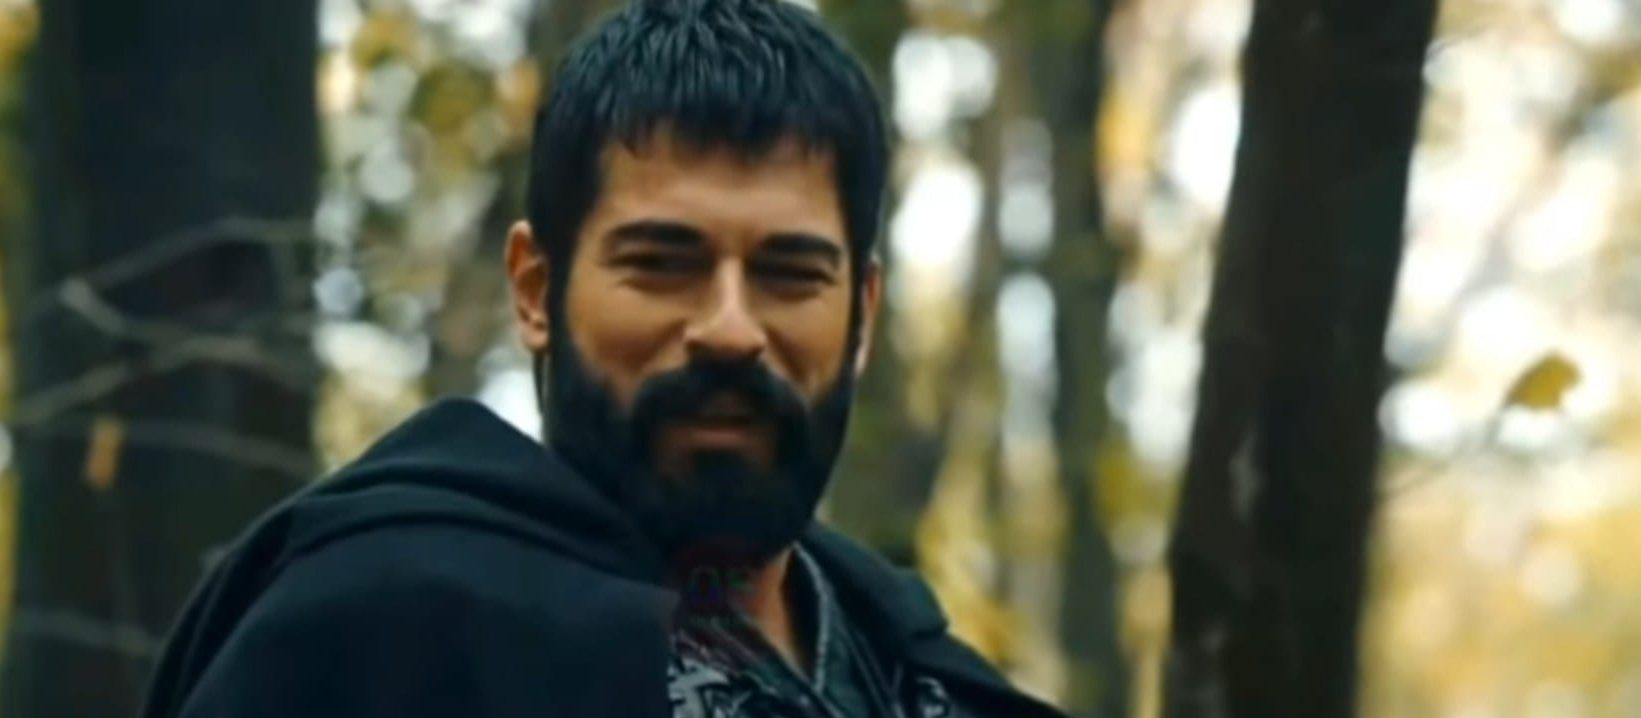 What To Expect From Kurlus Osman S02E36?